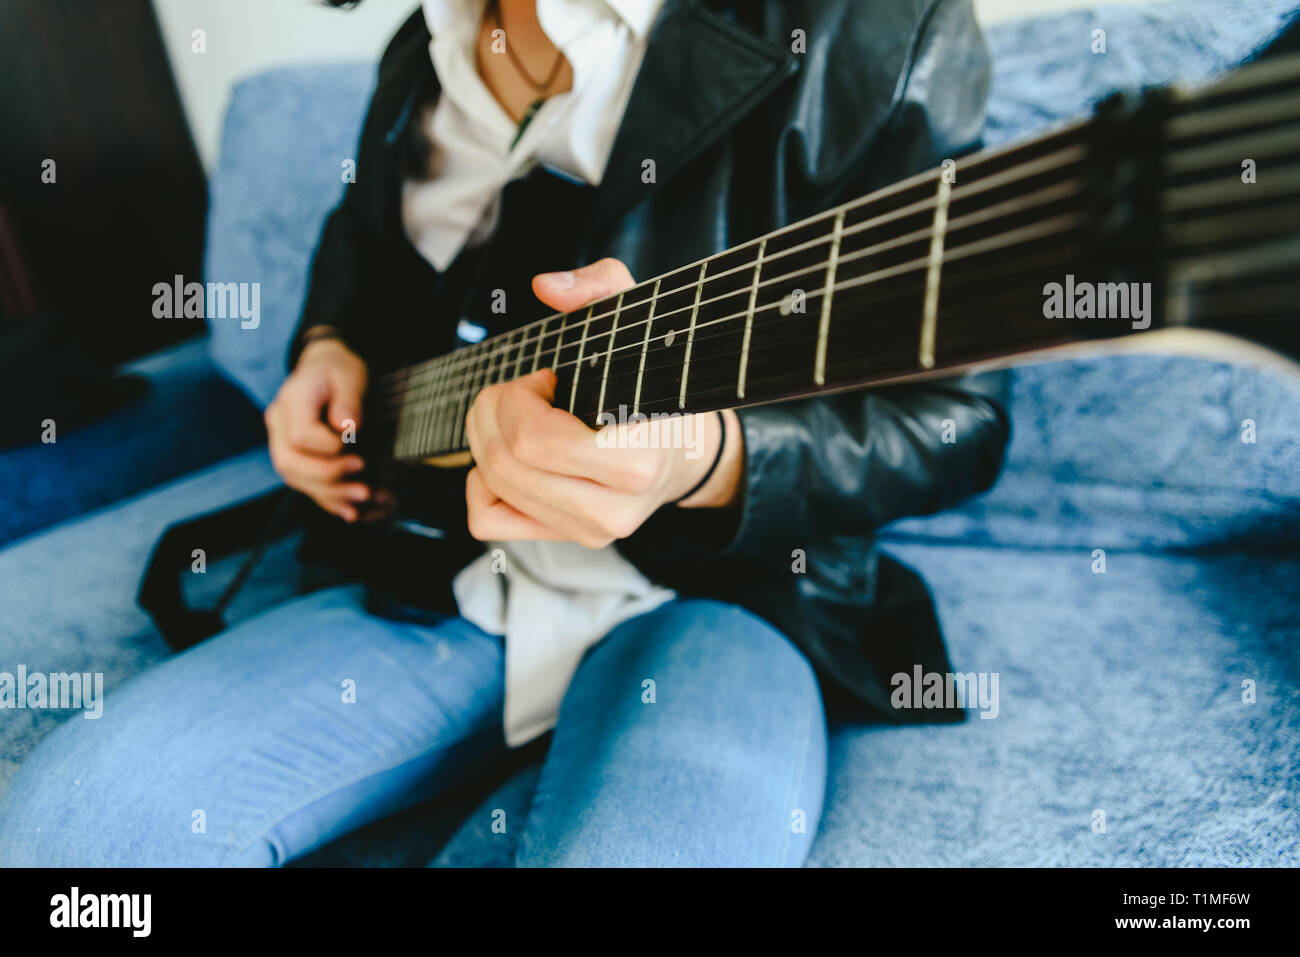 Detail of the fingers of a guitarist placed on the fret of the mast of the guitar playing a chord doing Tapping. - Stock Image